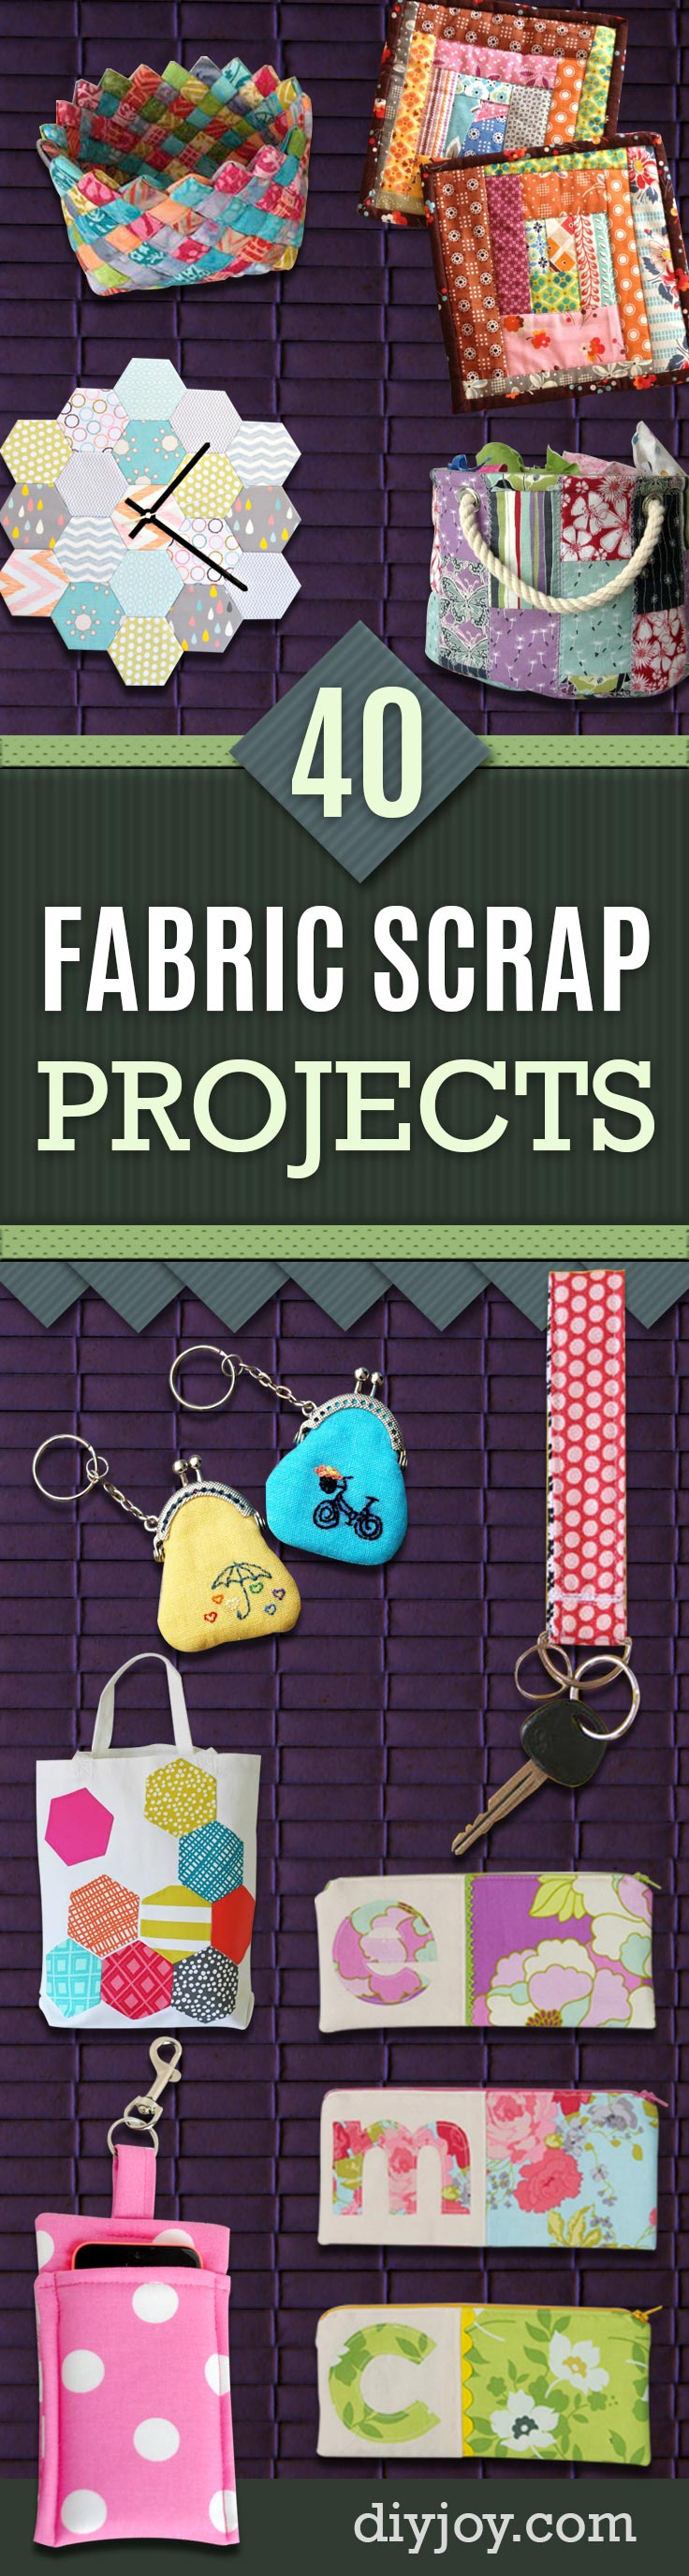 Cool Crafts You Can Make With Fabric Scraps - Creative DIY Sewing Projects and Things to Do With Leftover Fabric - Ideas, Tutorials and Patterns #sewing #fabric #crafts